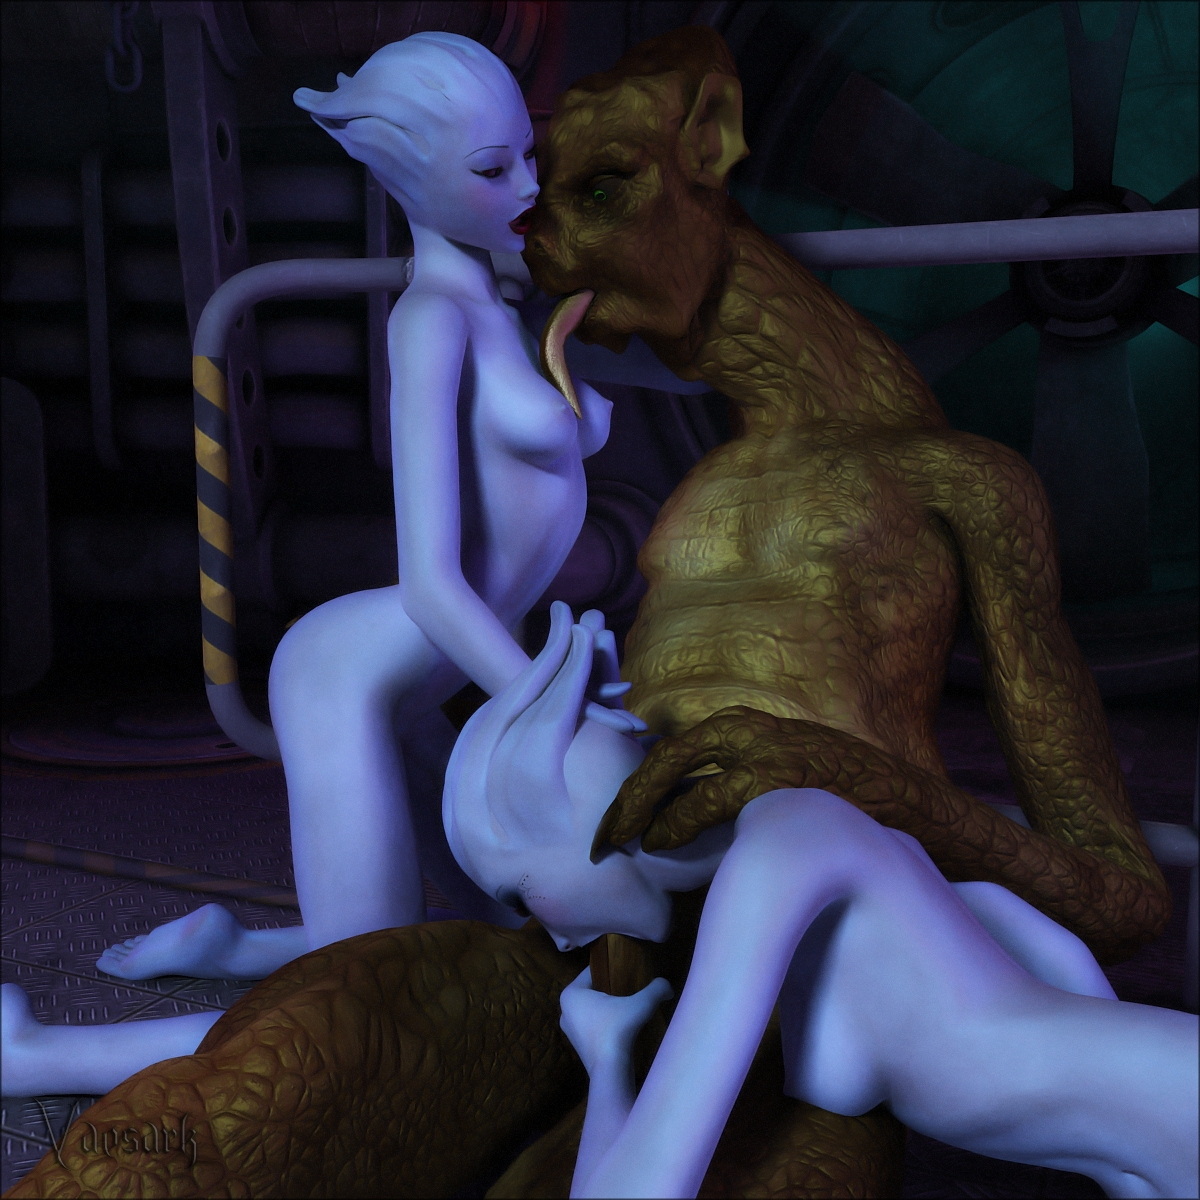 3dWorld of Warcraft porn crack erotic pic